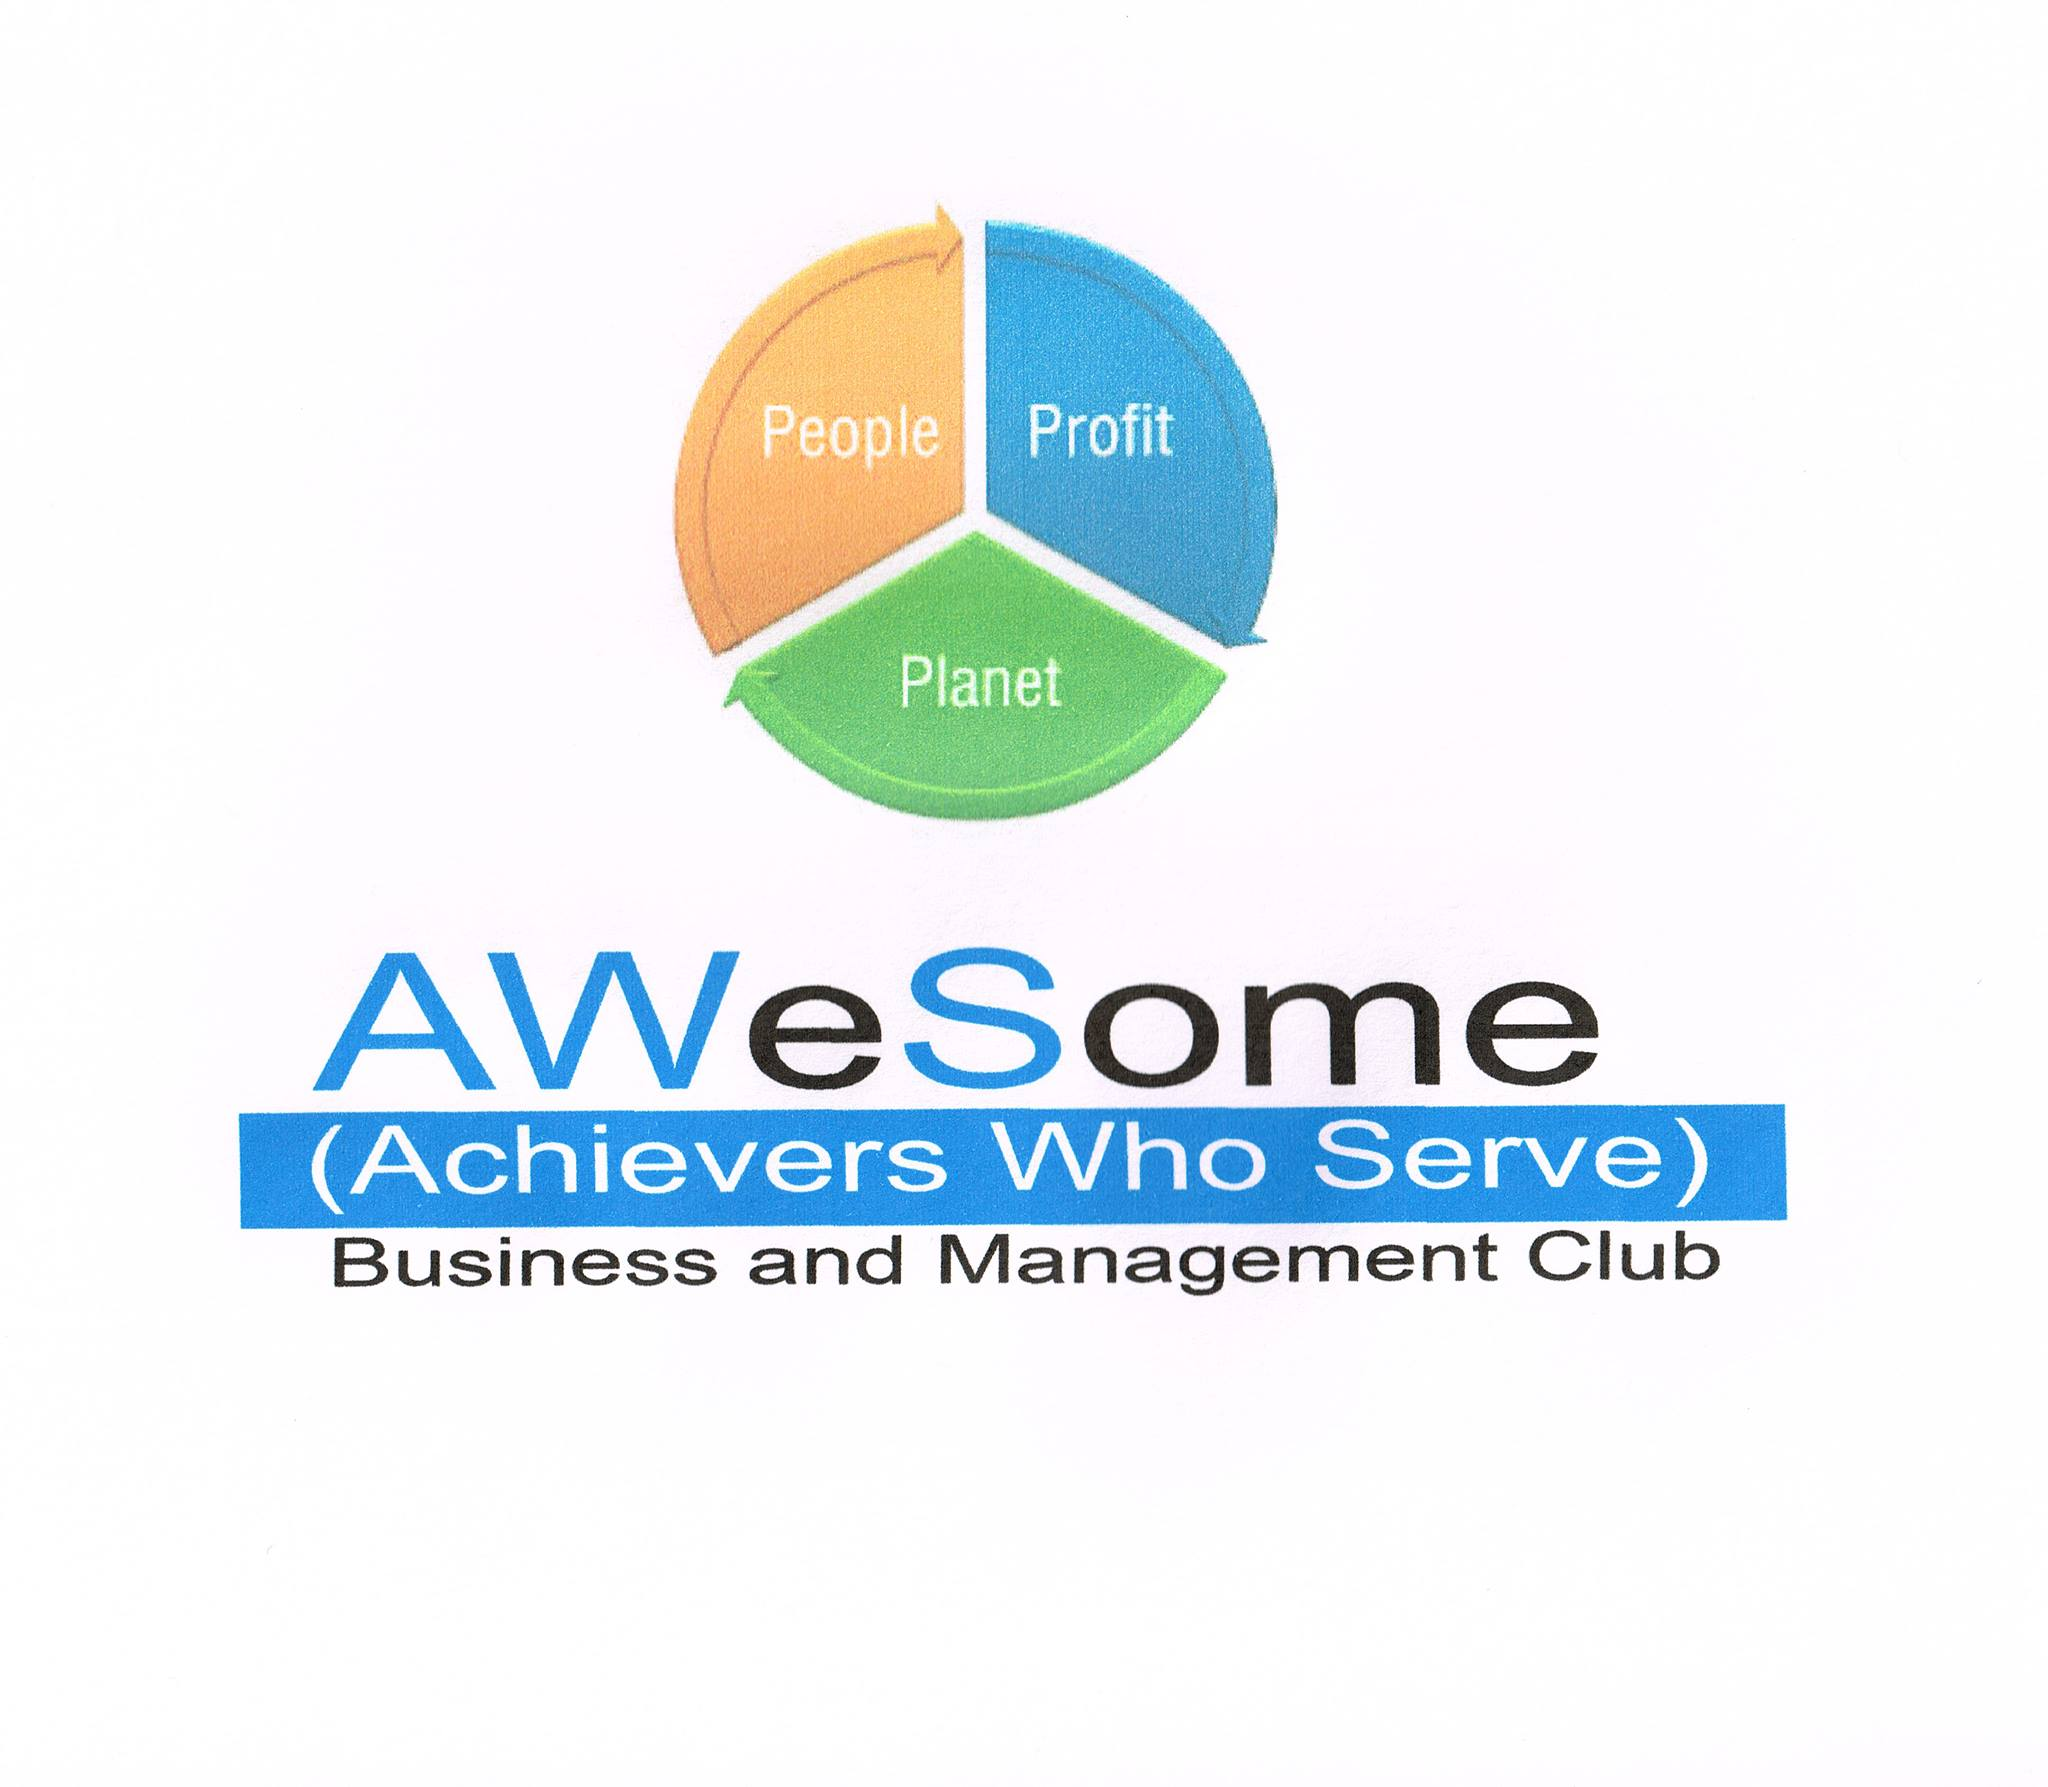 Achievers Who Serve - AWeSome Business and Management Club